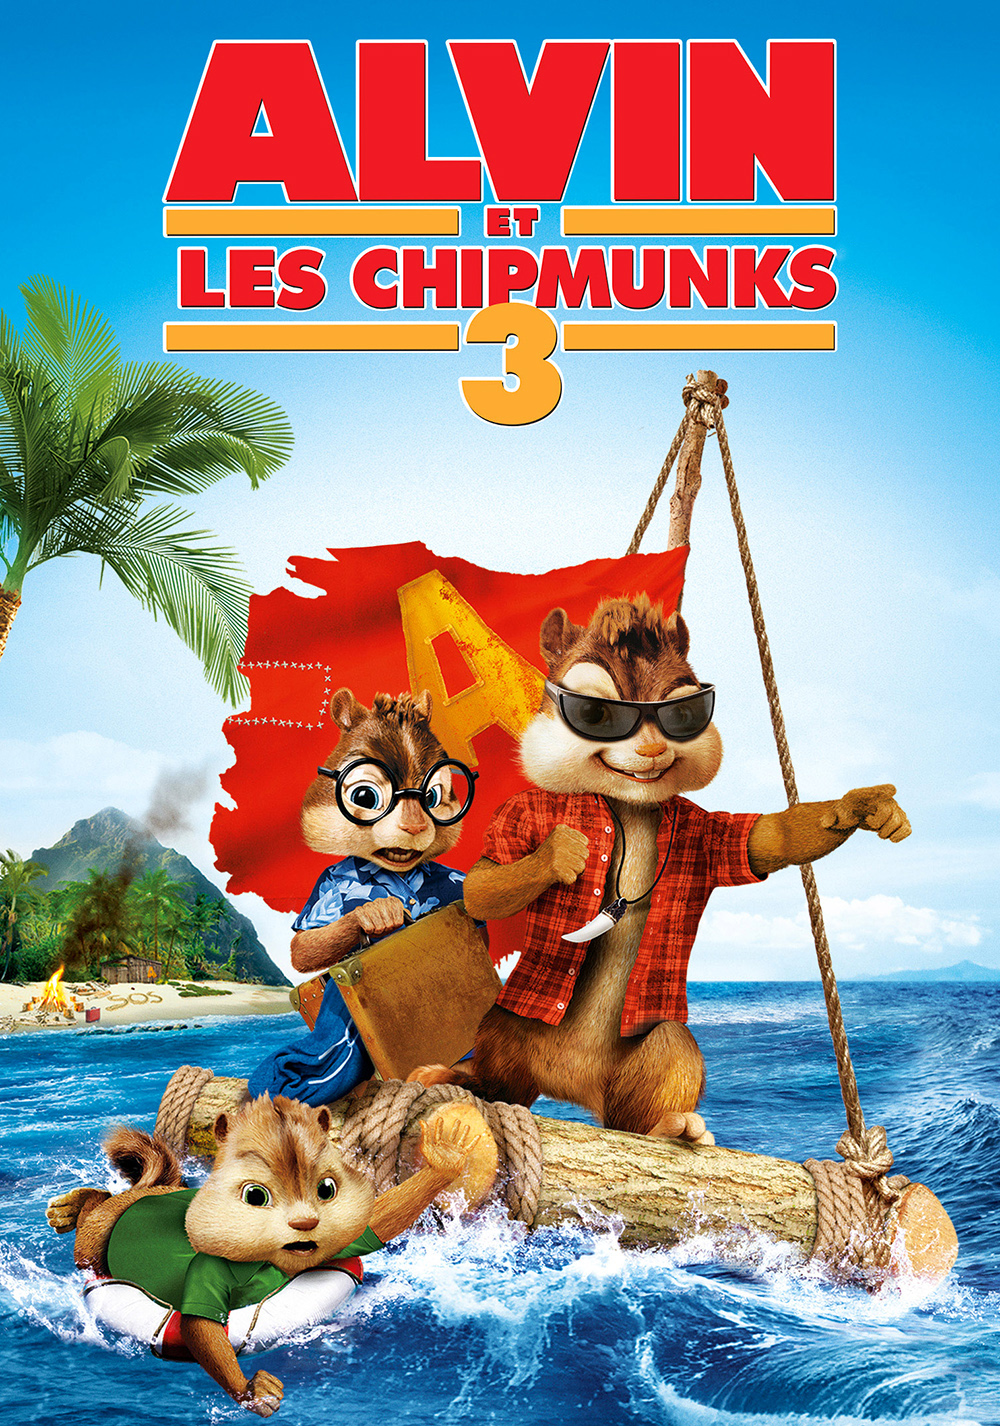 Alvin And The Chipmunks 3 Images alvin and the chipmunks: chipwrecked | movie fanart | fanart.tv